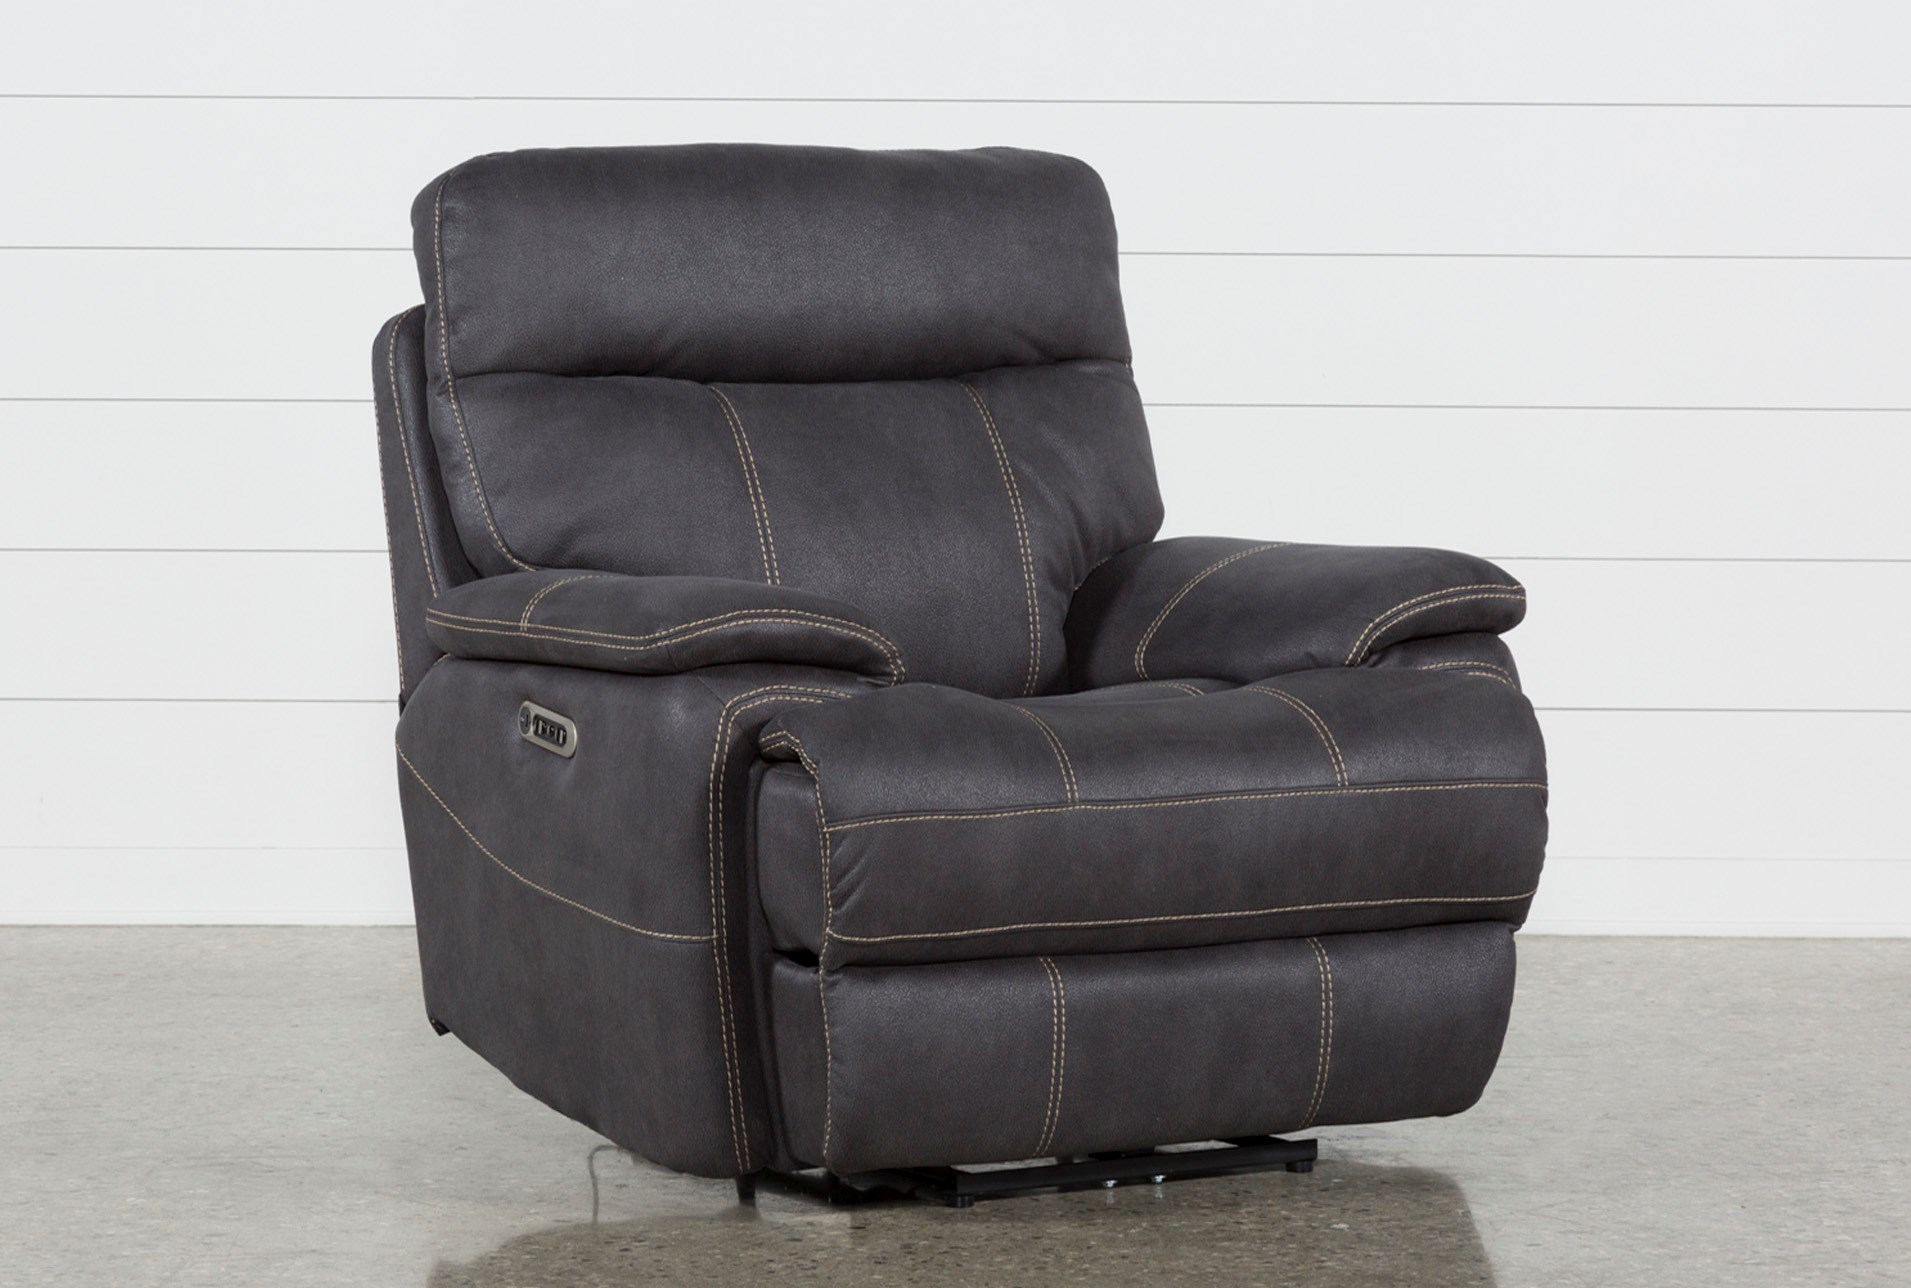 Denali Charcoal Grey Recliner W Headrest Usb Qty 1 Has Been Successfully Added To Your Cart